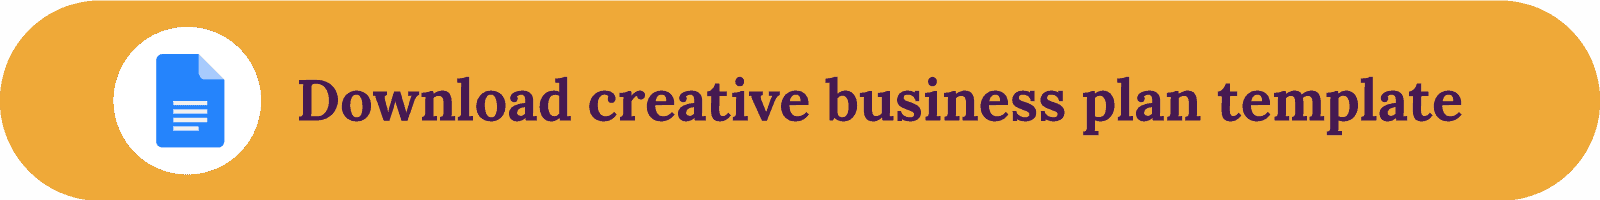 Download creative business plan template button